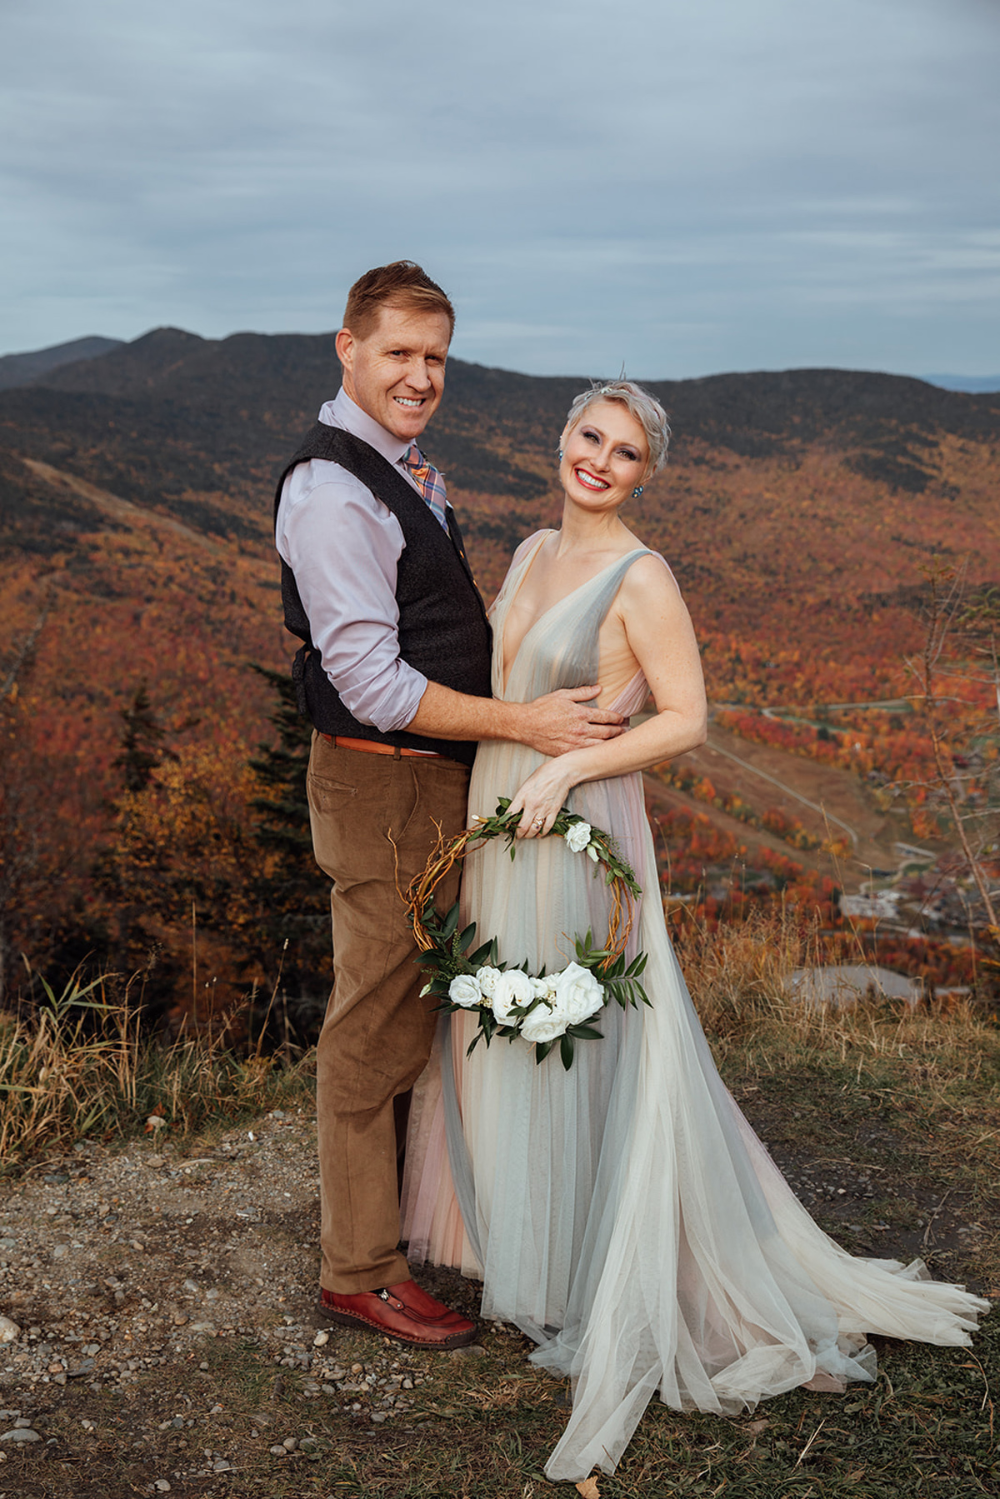 Whimsical Autumn Adventure Elopement in Vermont with ...